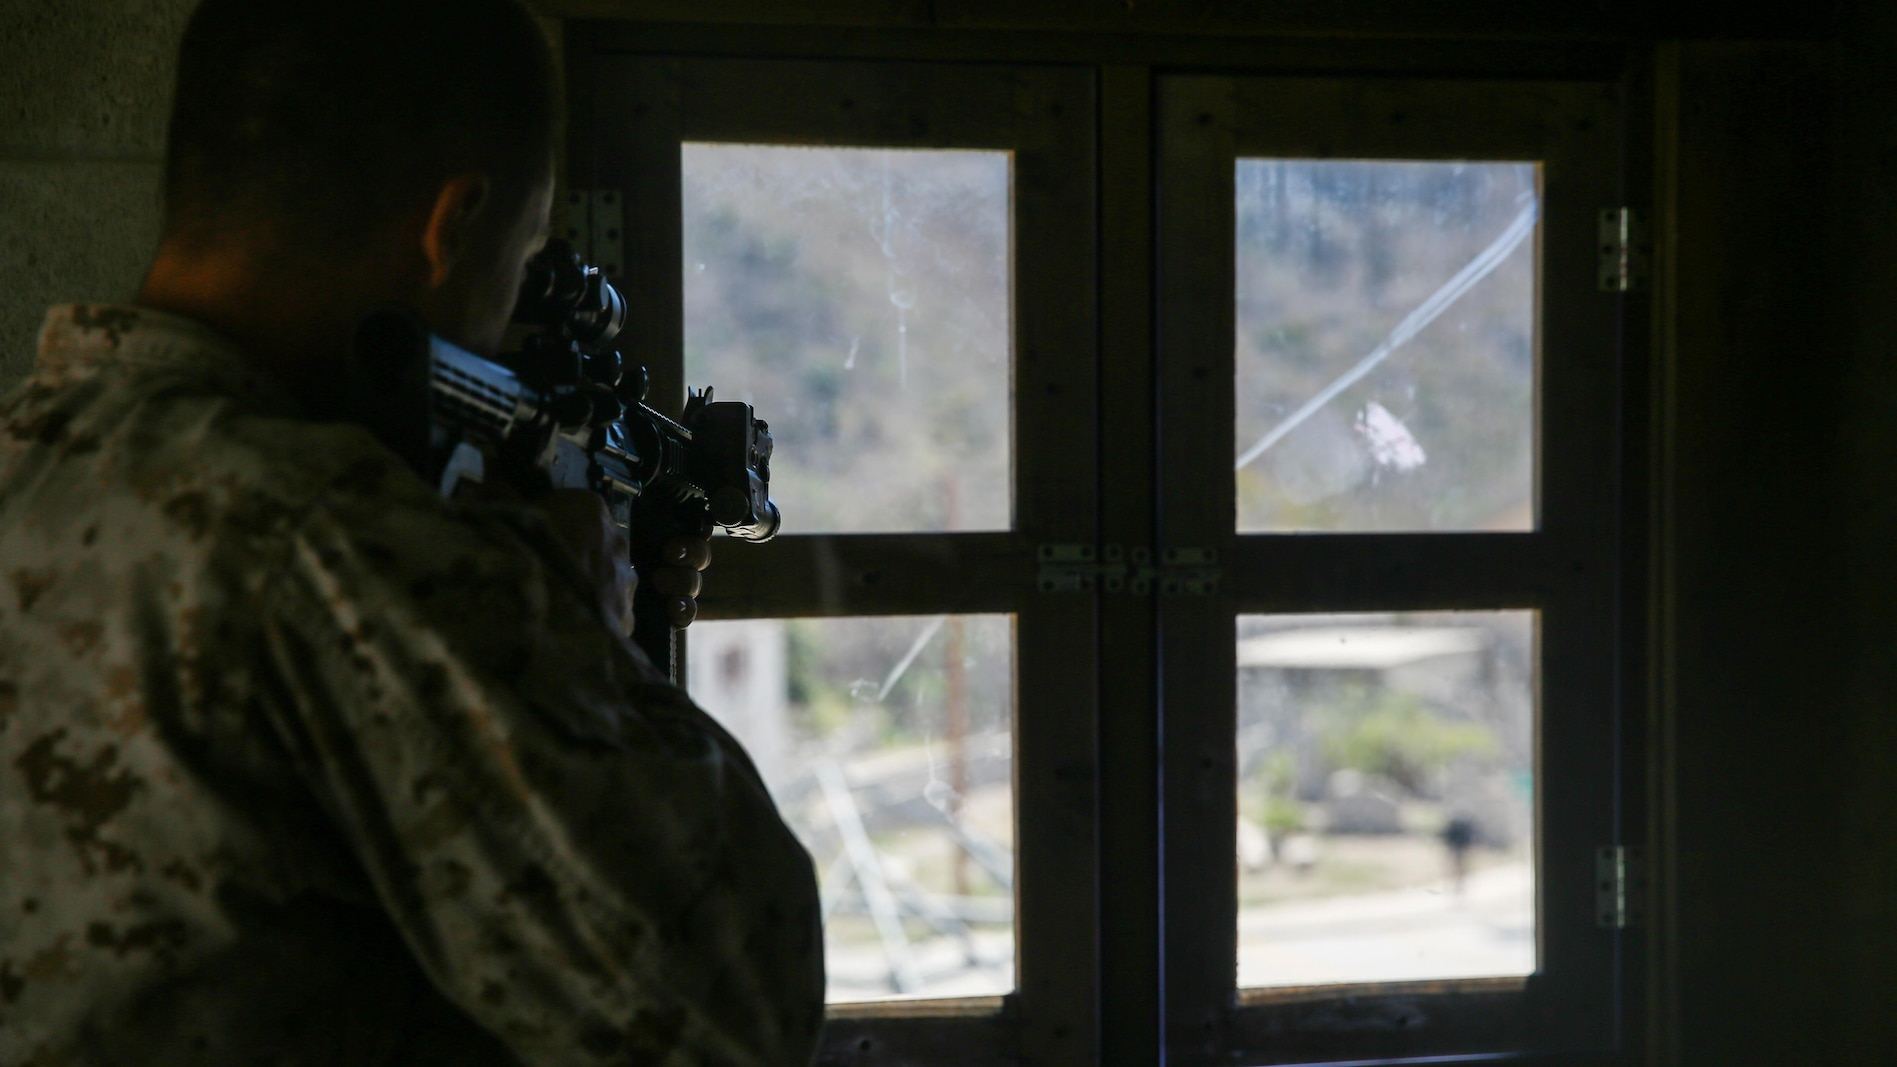 A Marine with 2nd Battalion, 7th Marine Regiment sights in on a simulated enemy during the culminating event of 1st Marine Division Schools' Urban Leaders Course at Marine Corps Base Camp Pendleton, Calif., Aug. 12, 2015. The course is a 15-day period of instruction that includes classwork, combat marksmanship and physical training executed in a simulated urban combat environment.